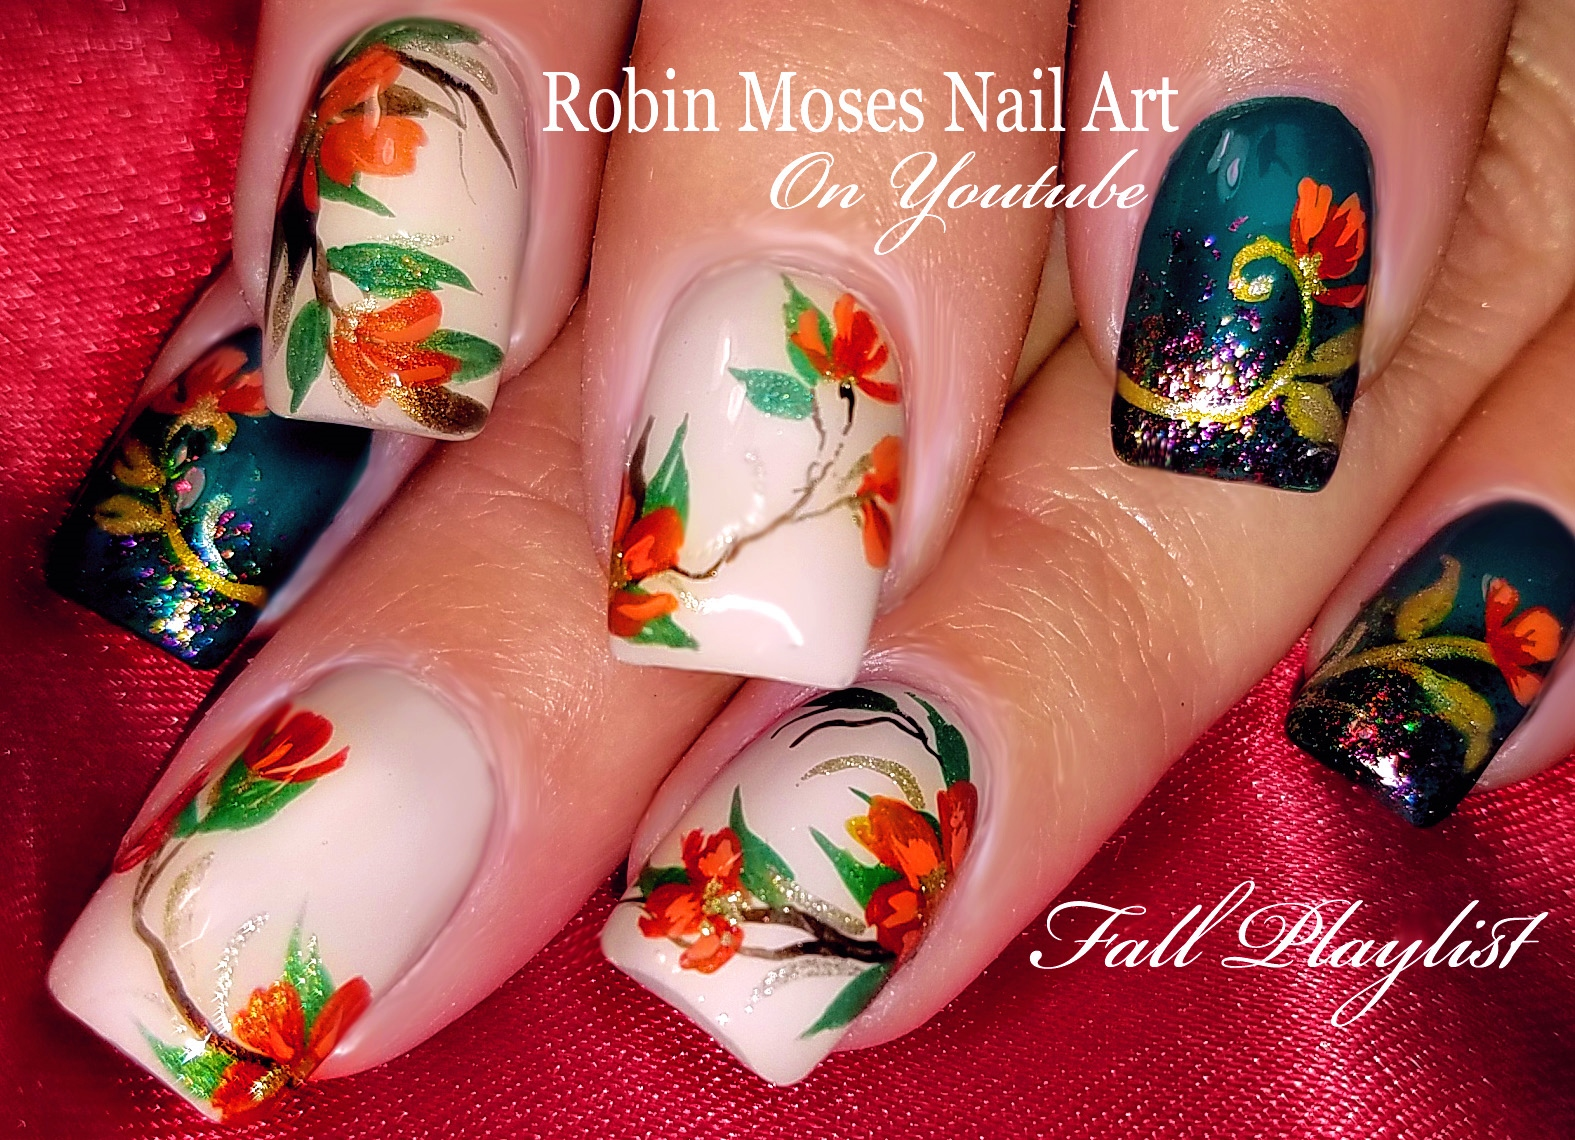 Nail Art by Robin Moses: Fall Nails Playlist | Full Length Autumn ...